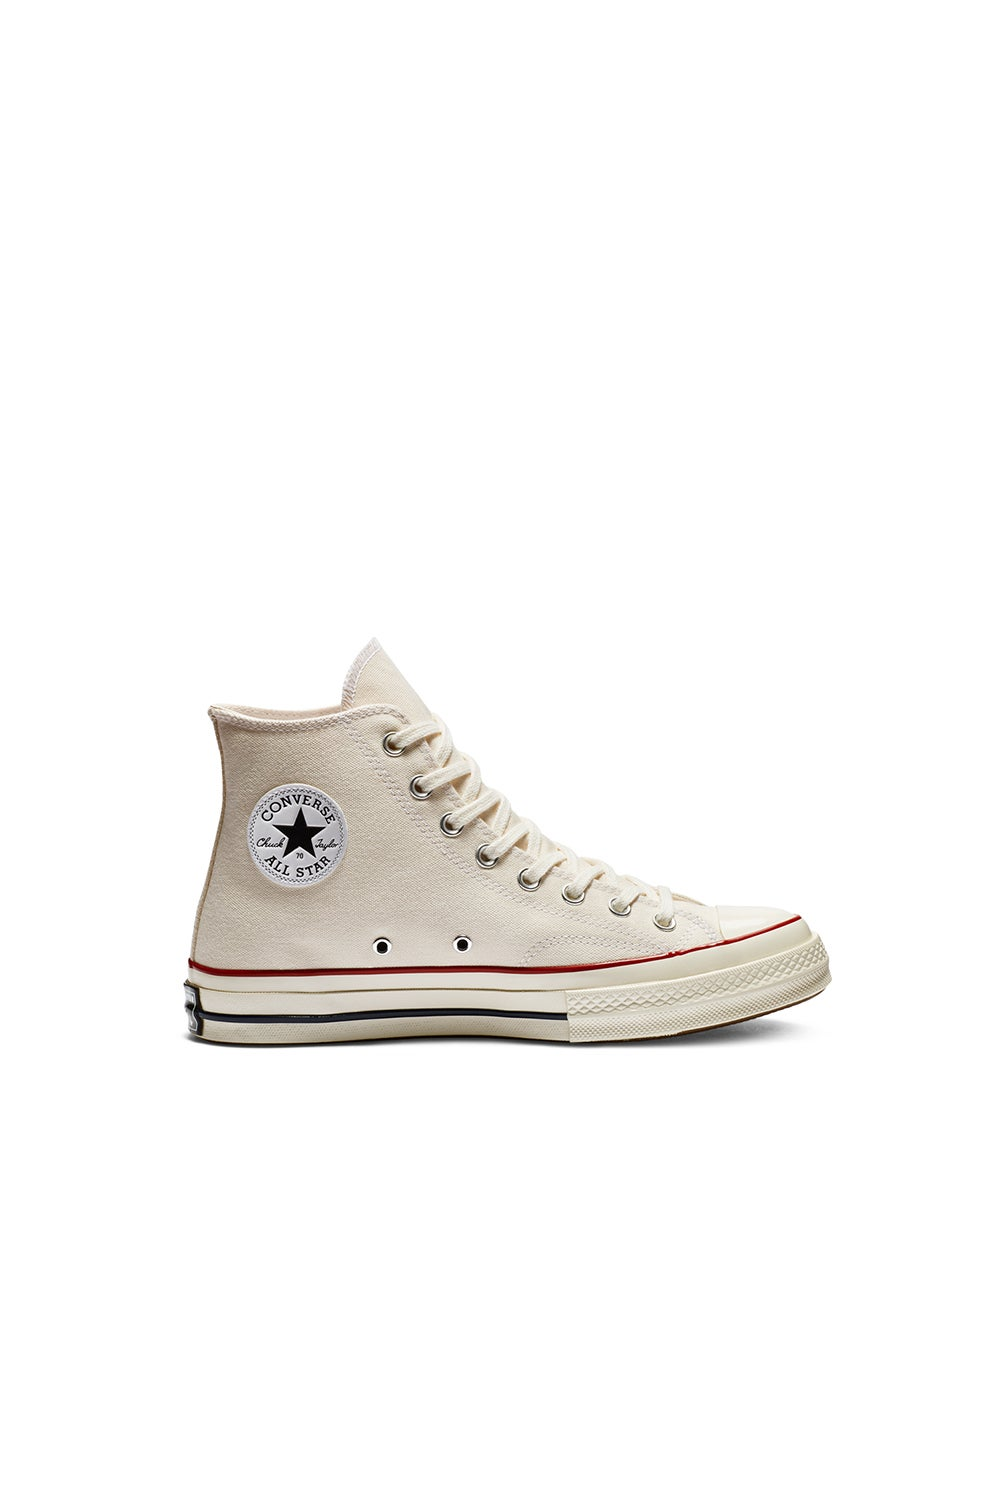 Converse Chuck Taylor All Star 70 High Parchment